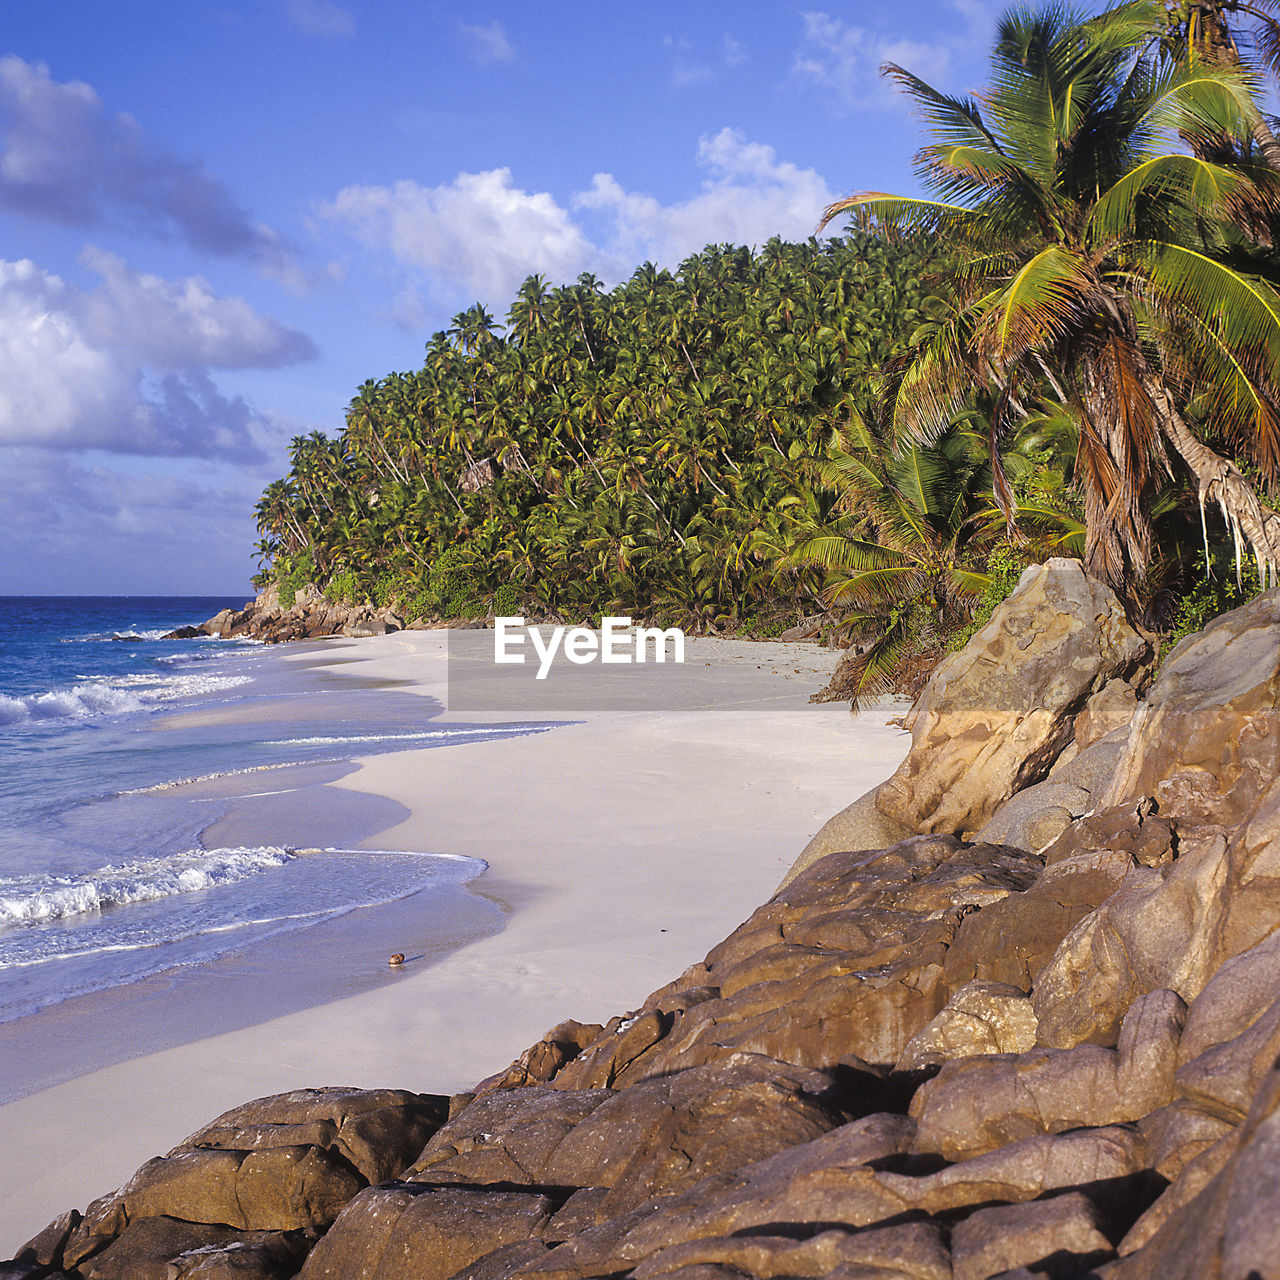 sea, water, beach, sky, land, beauty in nature, cloud - sky, tree, plant, tropical climate, rock, tranquility, scenics - nature, tranquil scene, nature, palm tree, rock - object, solid, growth, no people, horizon over water, outdoors